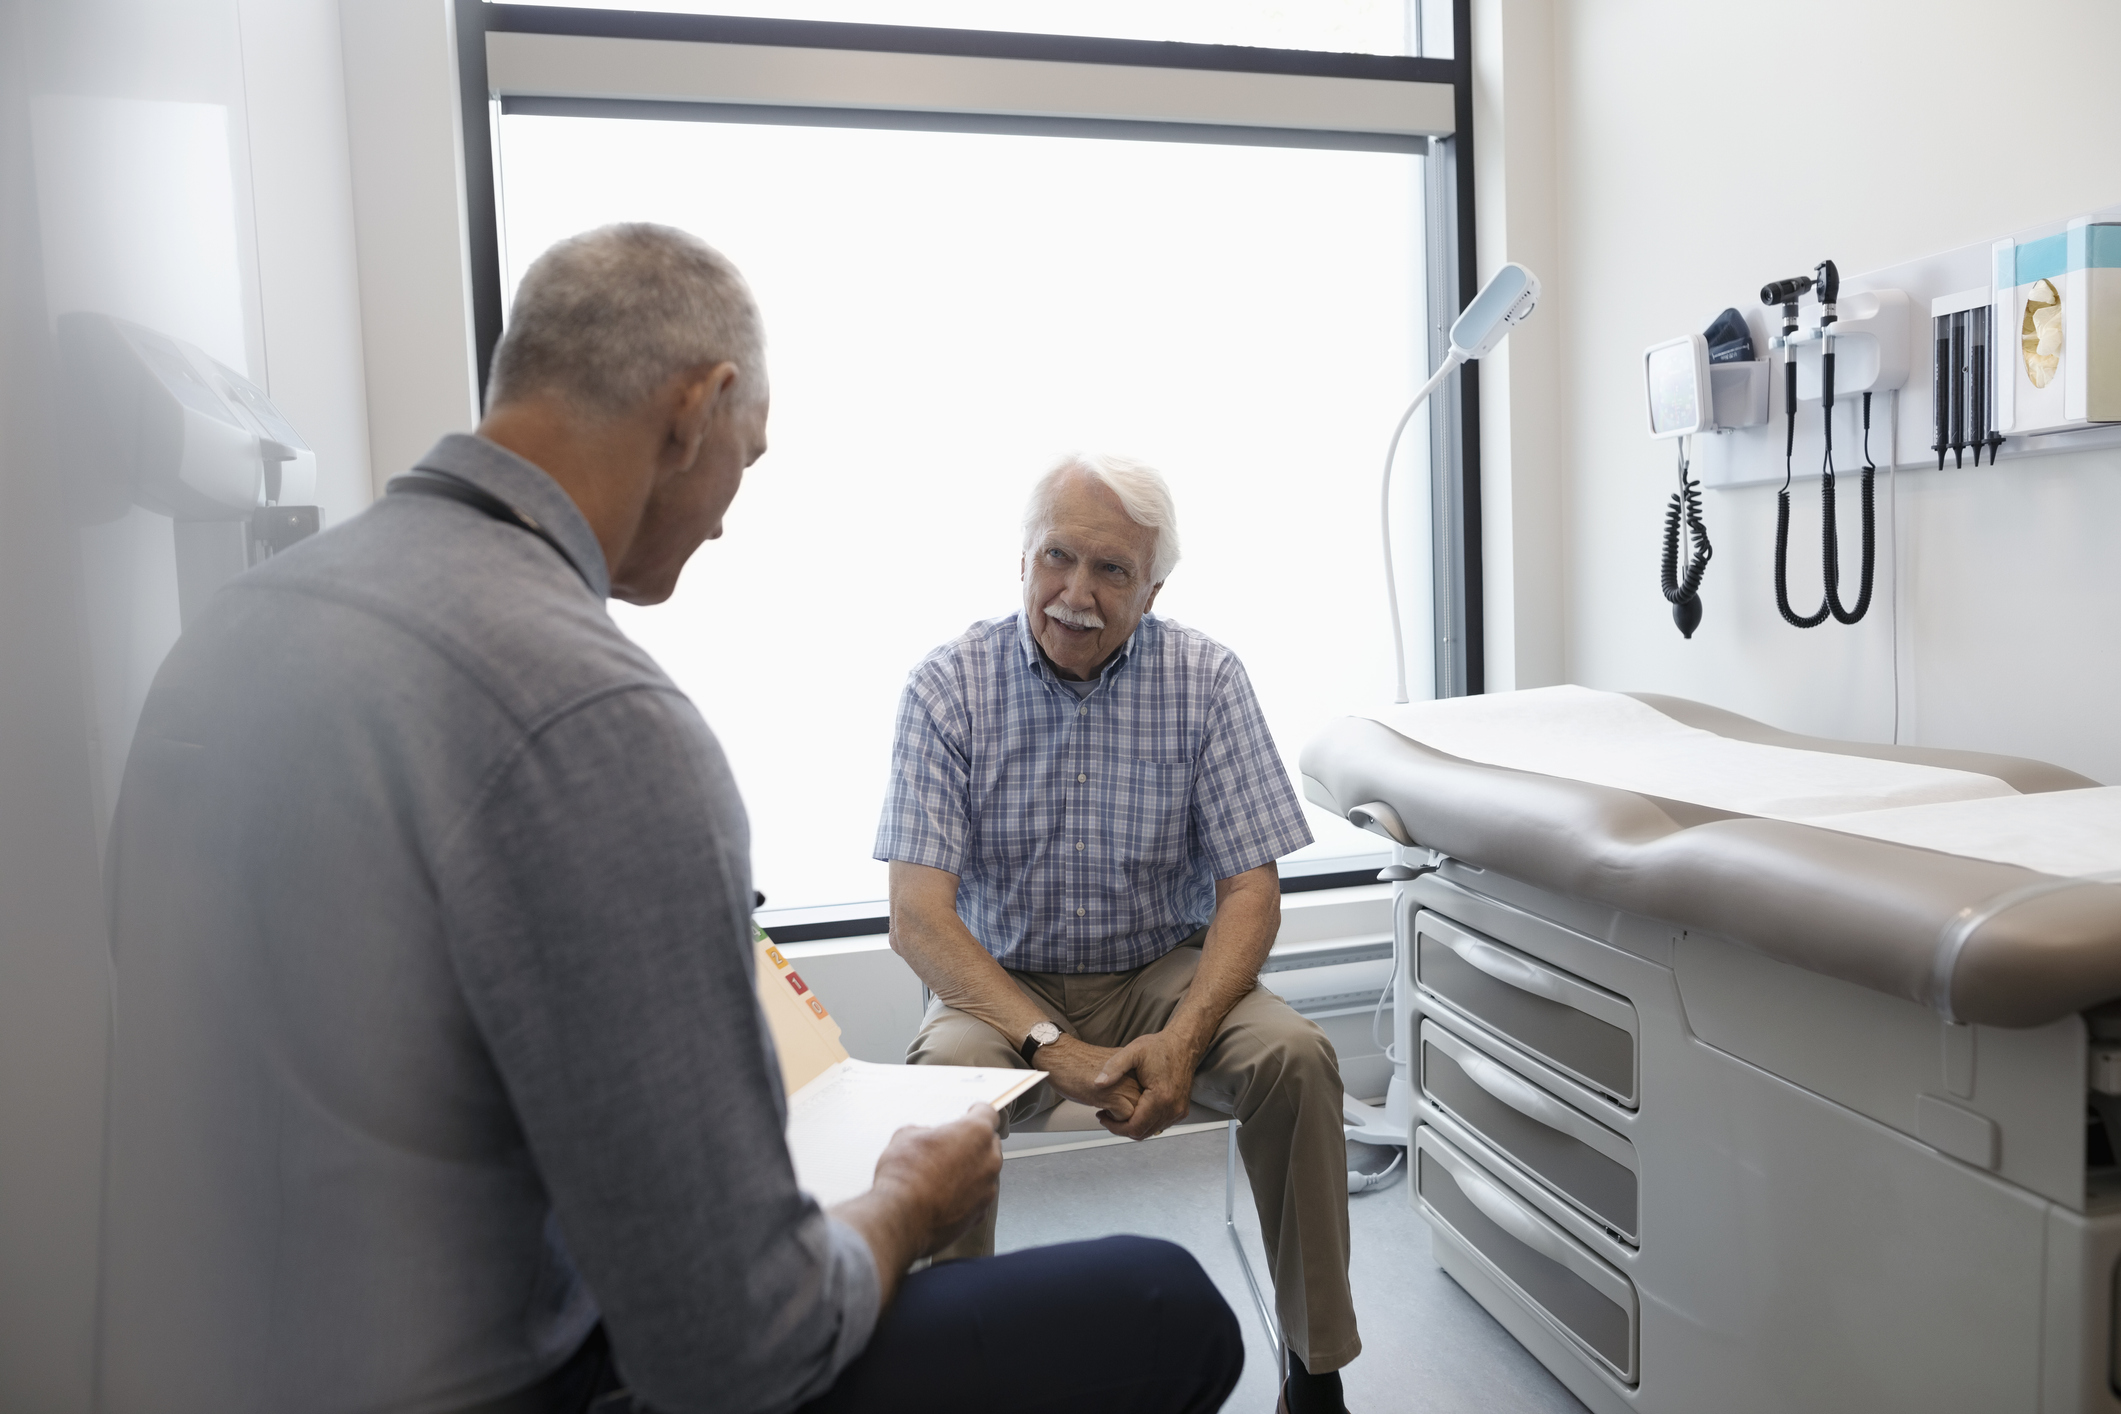 Prostate cancer: the symptoms to look out for in your partner